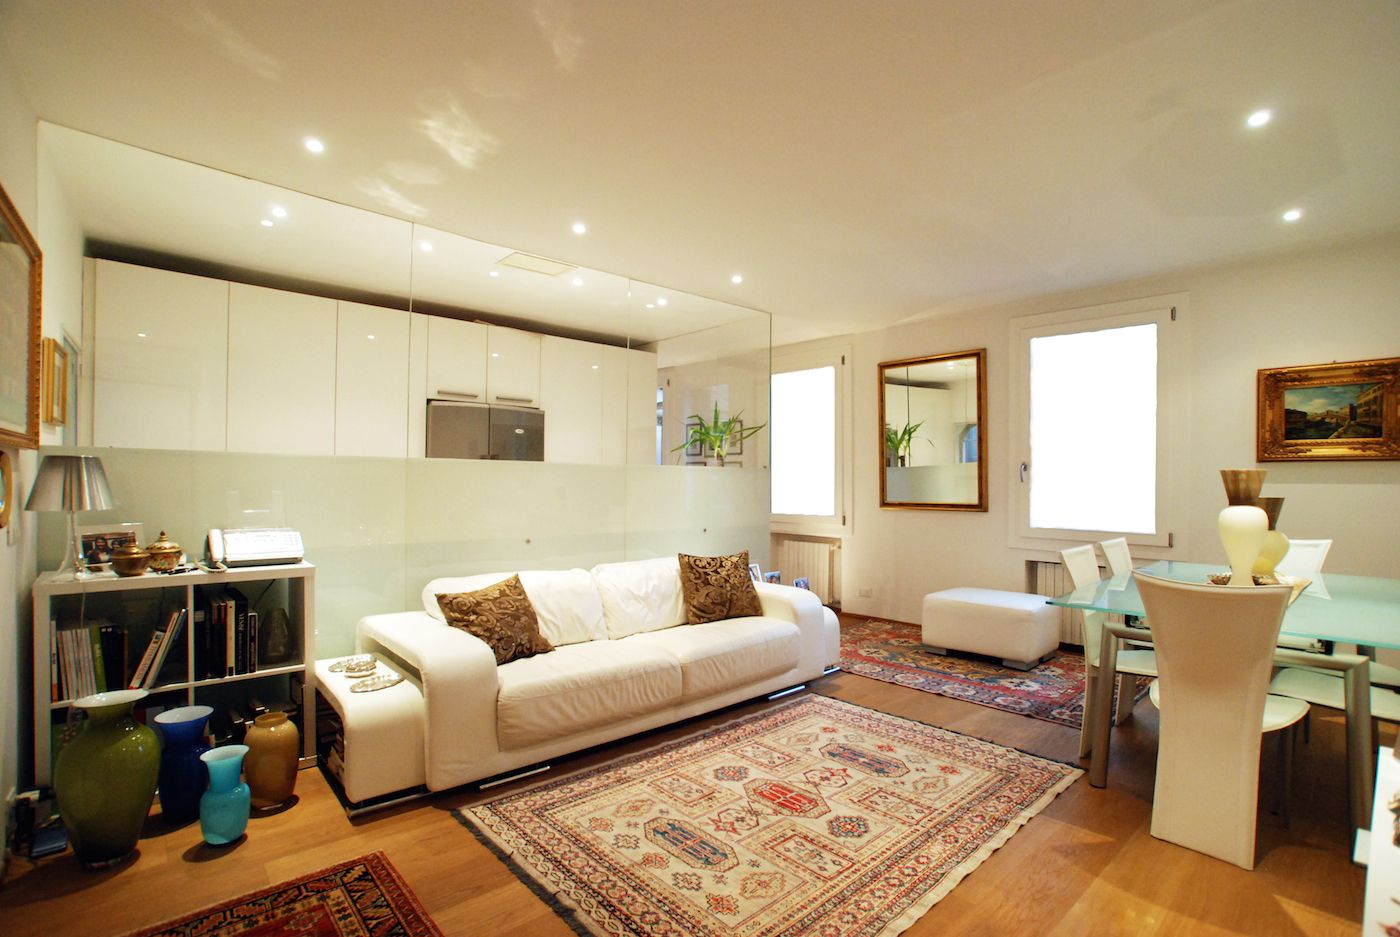 the luxurious living room is very comfortable and luminous